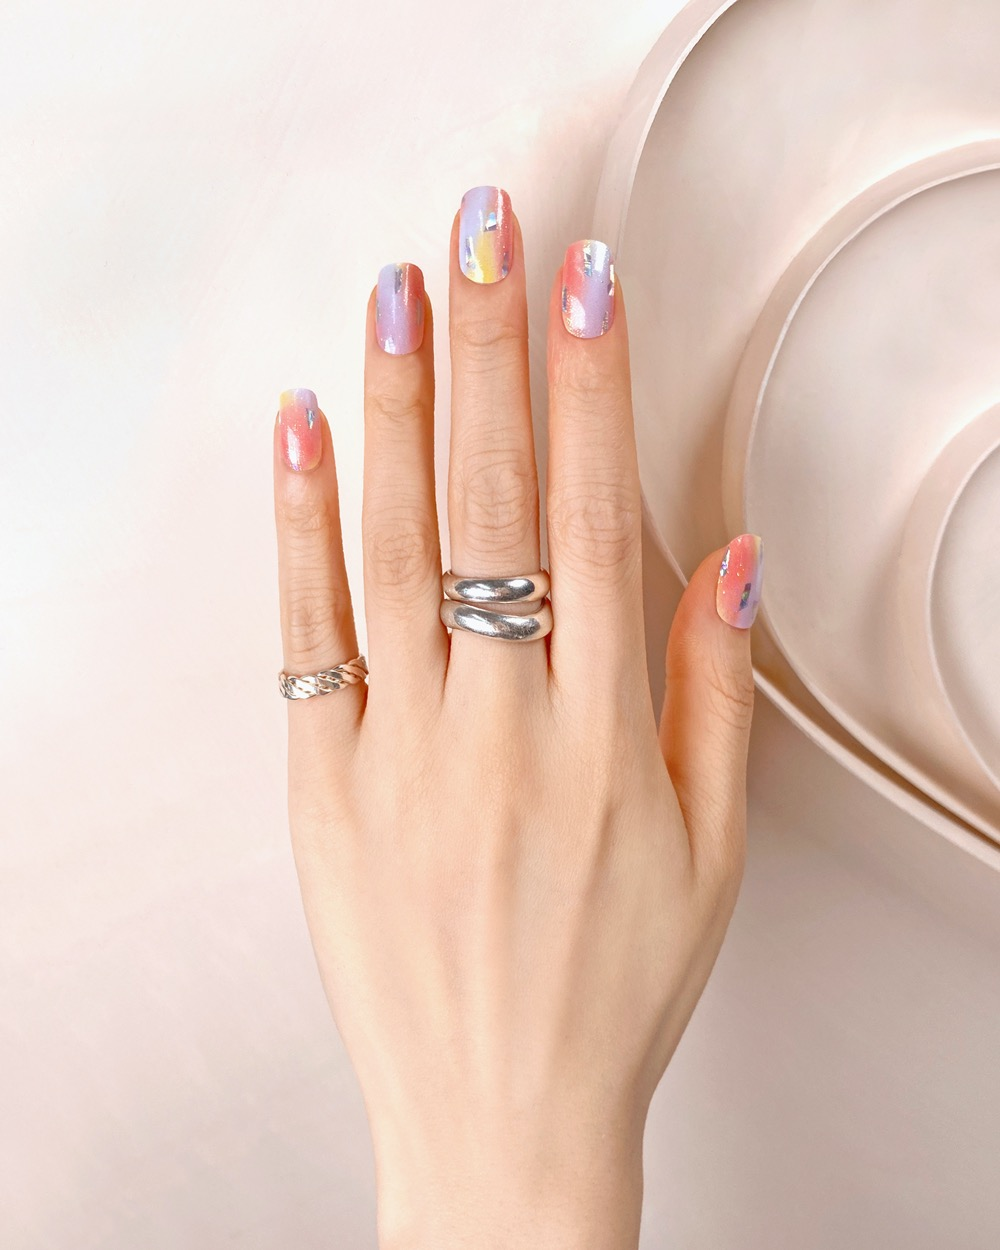 POPPING CANDY VOLUME GEL NAIL